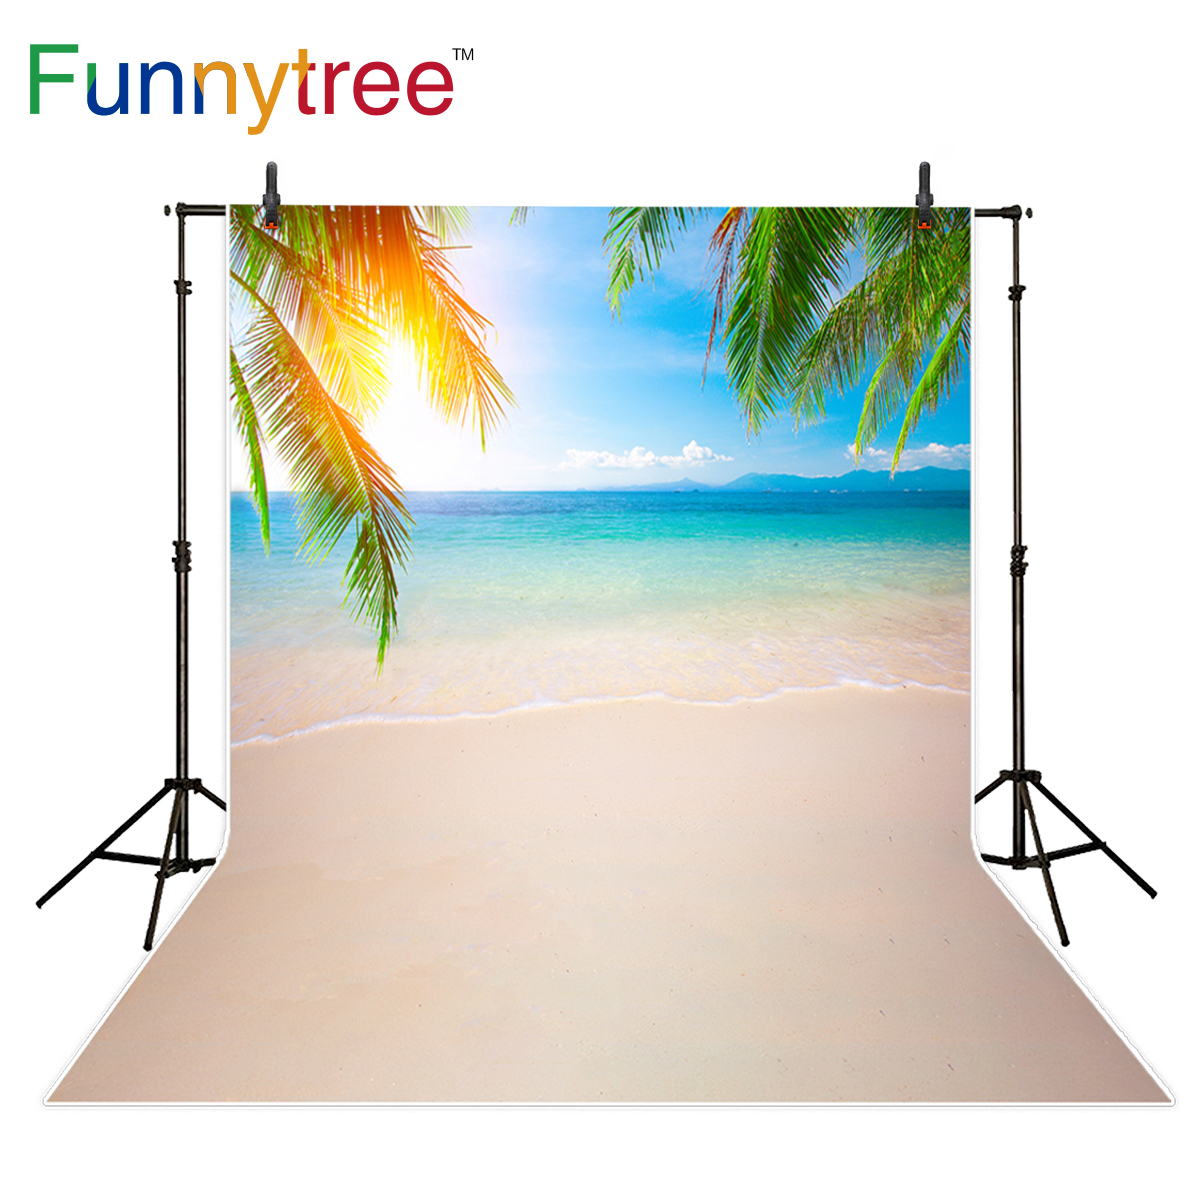 Funnytree photography backdrop sea beach summer natural scenery tropical sunshine background photocall photo studio printed